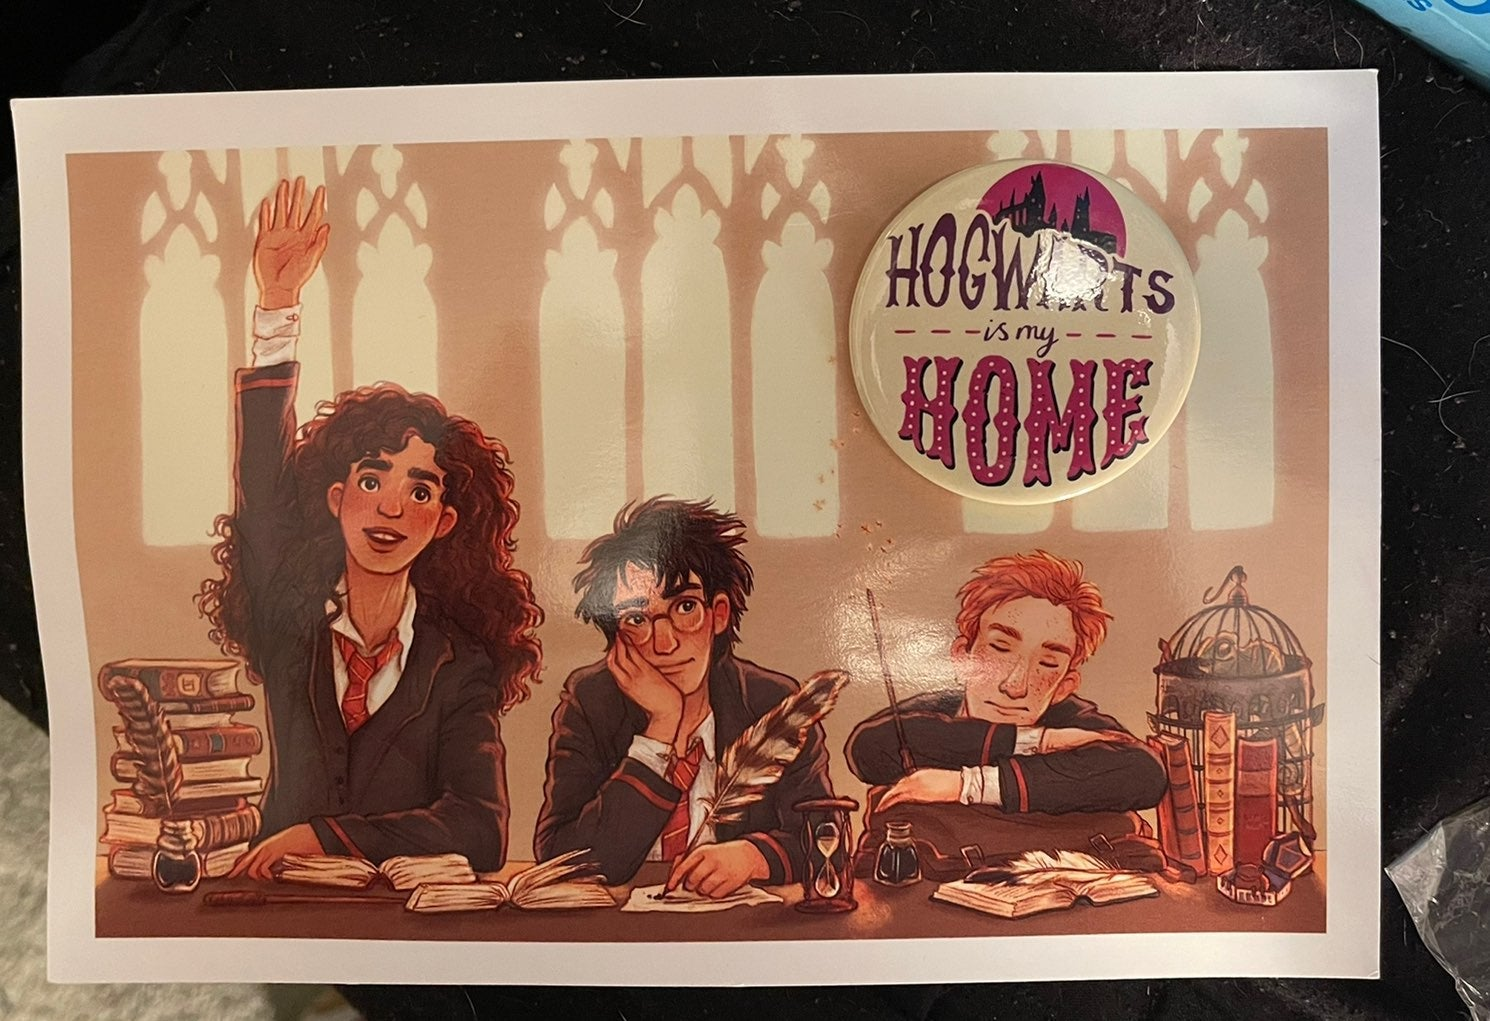 Harry Potter Owlcrate print and botton